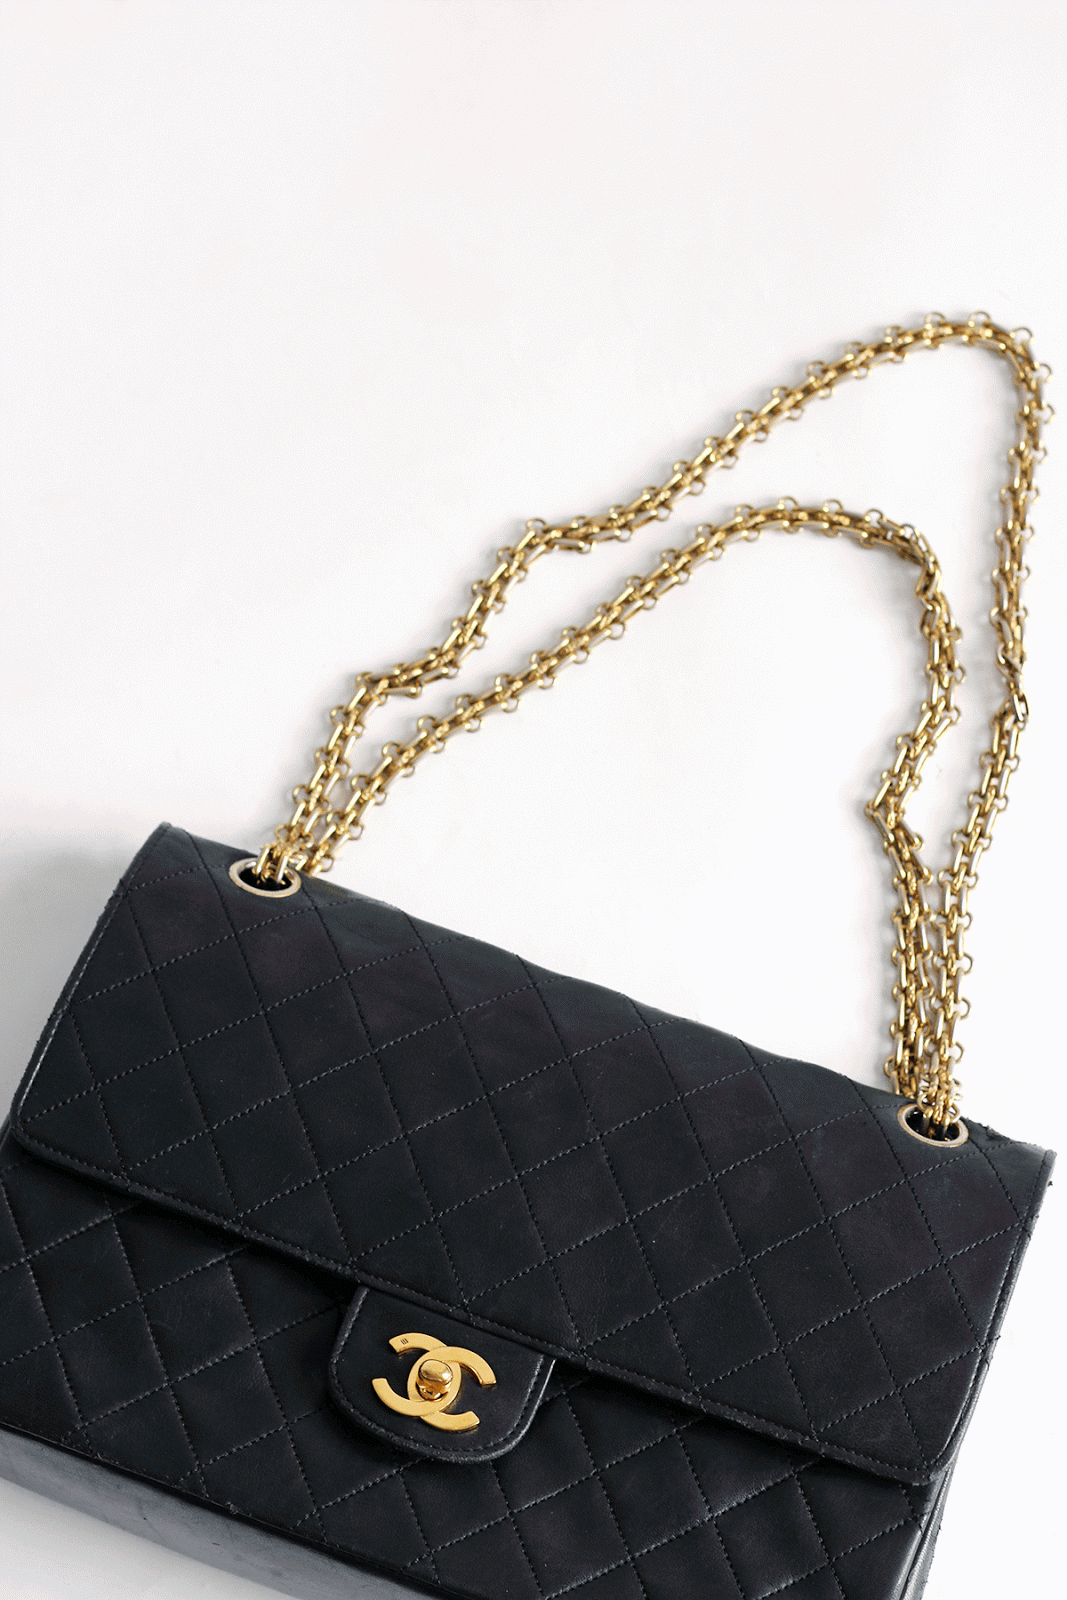 TODAY  The Vintage Chanel Bag   My bucket list...   Pinterest ... 9ad9a08bfb7